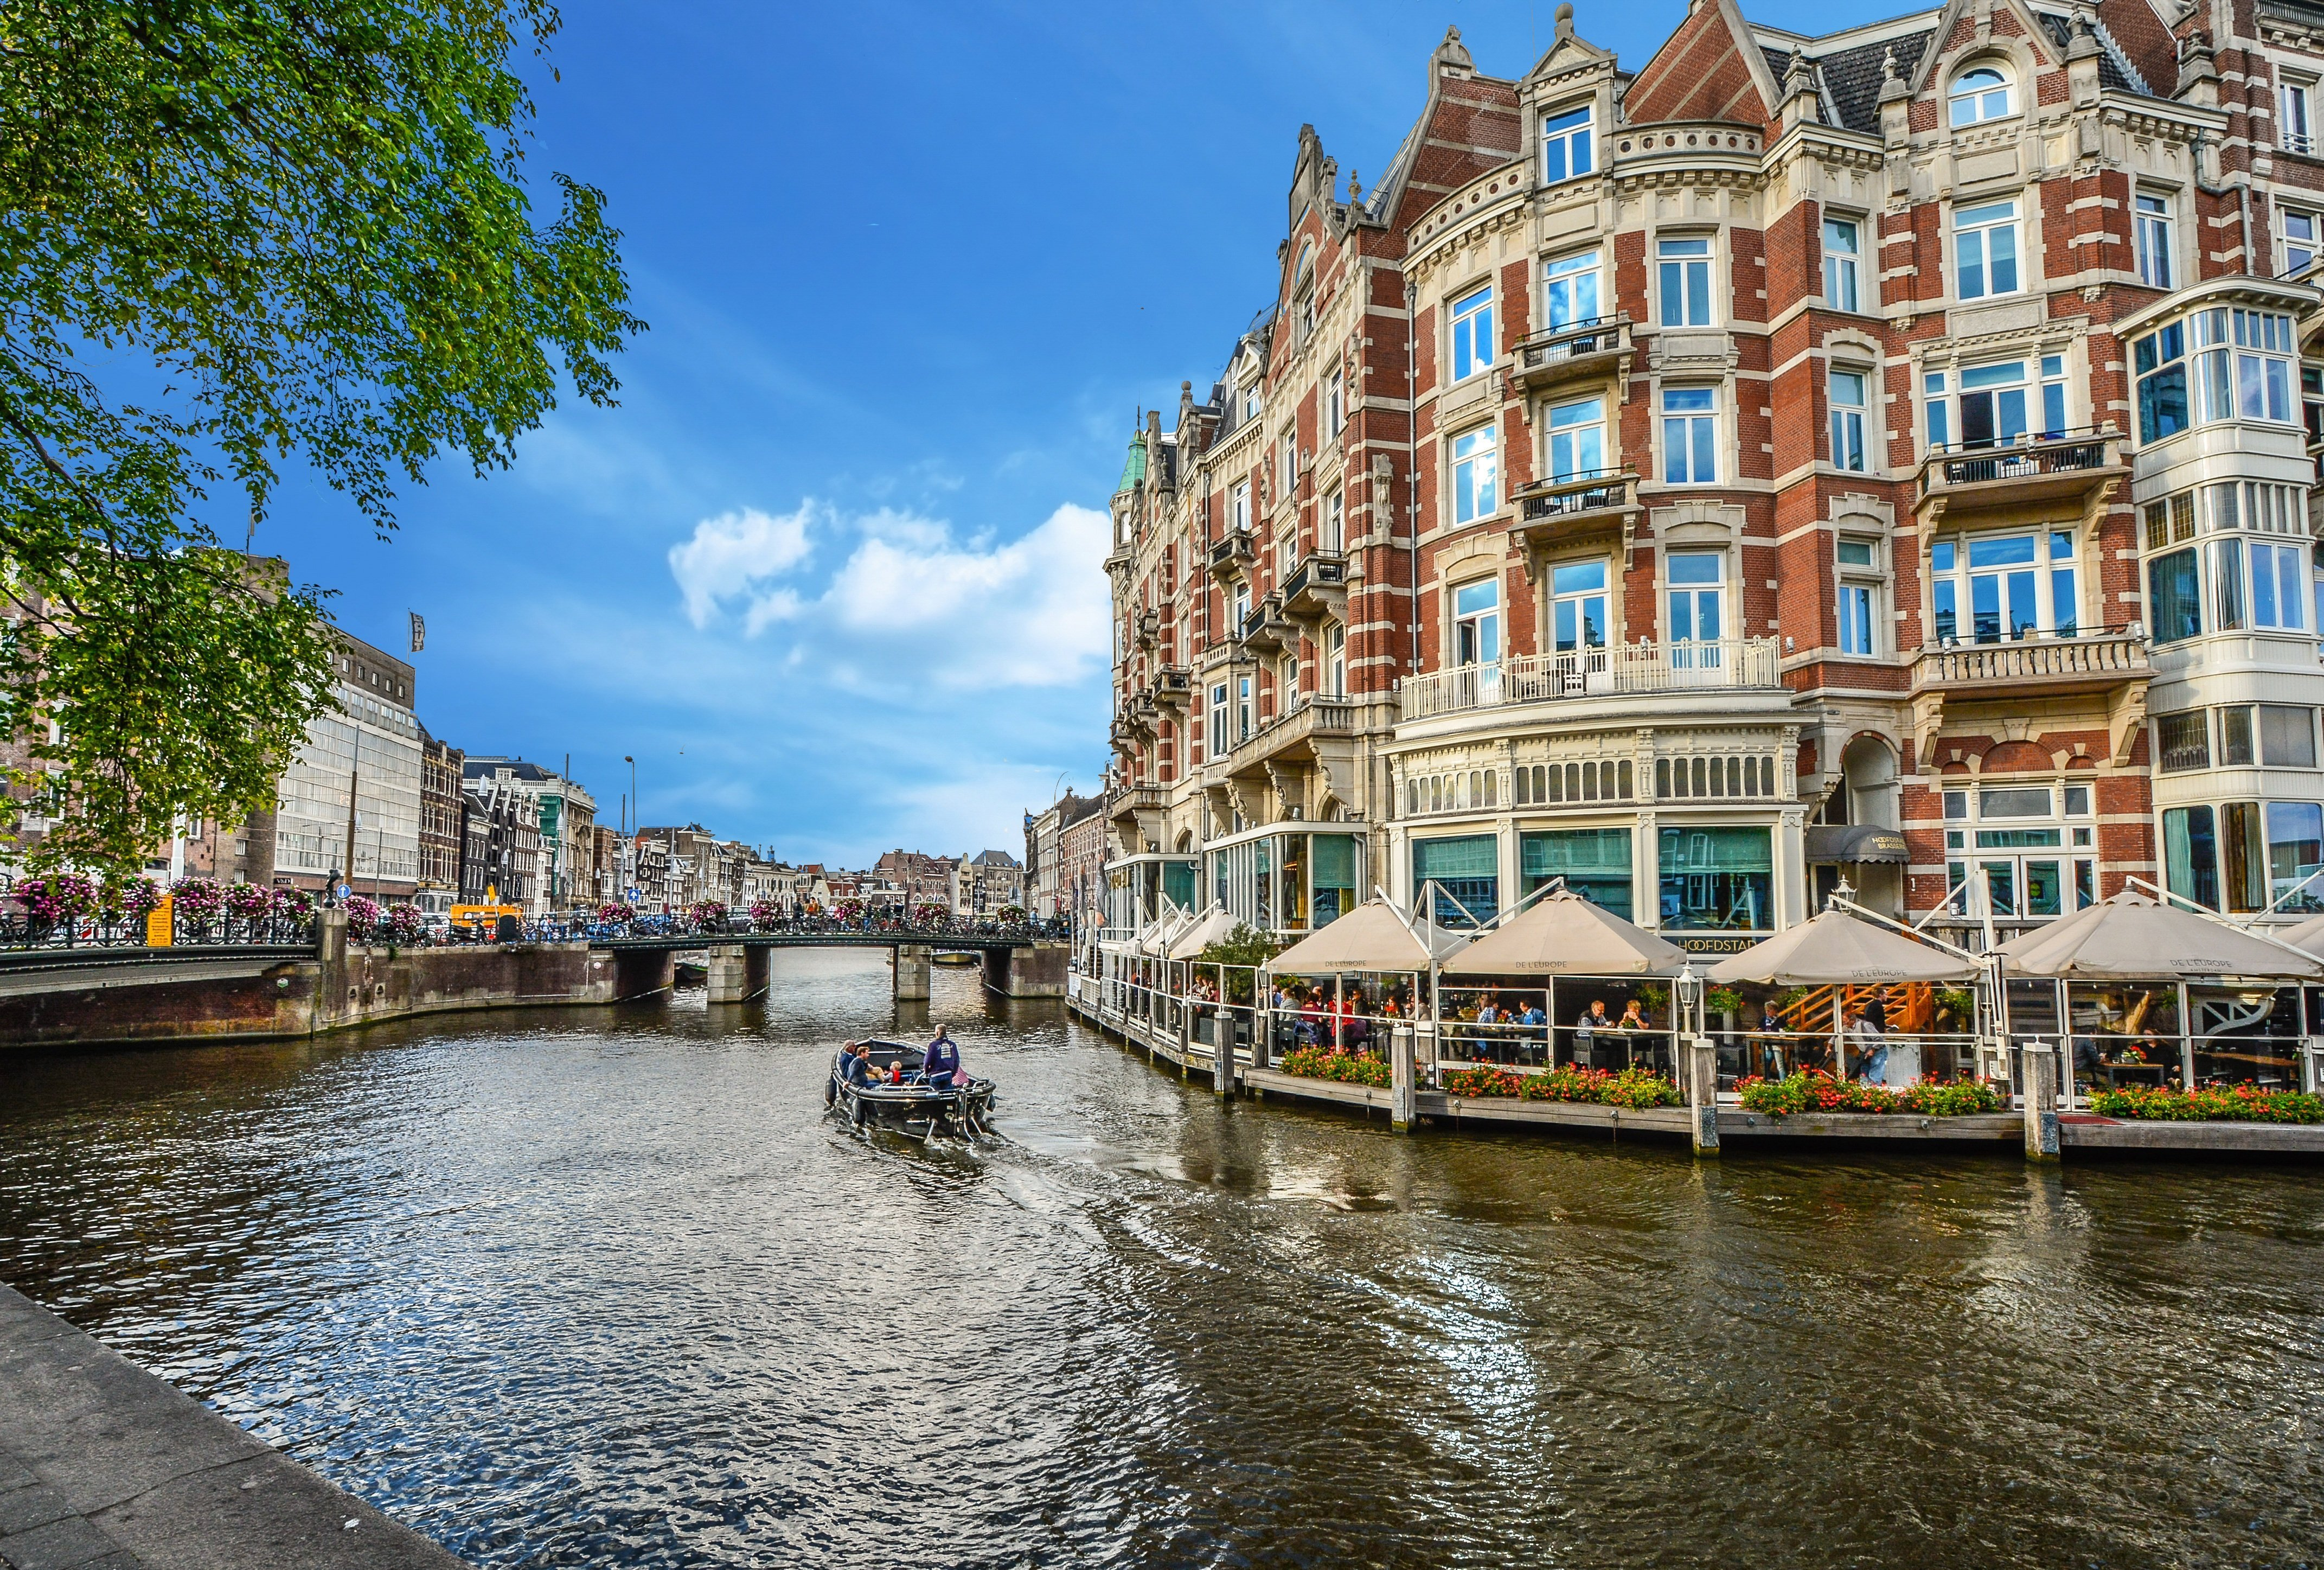 3 day amsterdam itinerary for first time visitors dutch wannabe 3 day amsterdam itinerary for first time visitors solutioingenieria Gallery